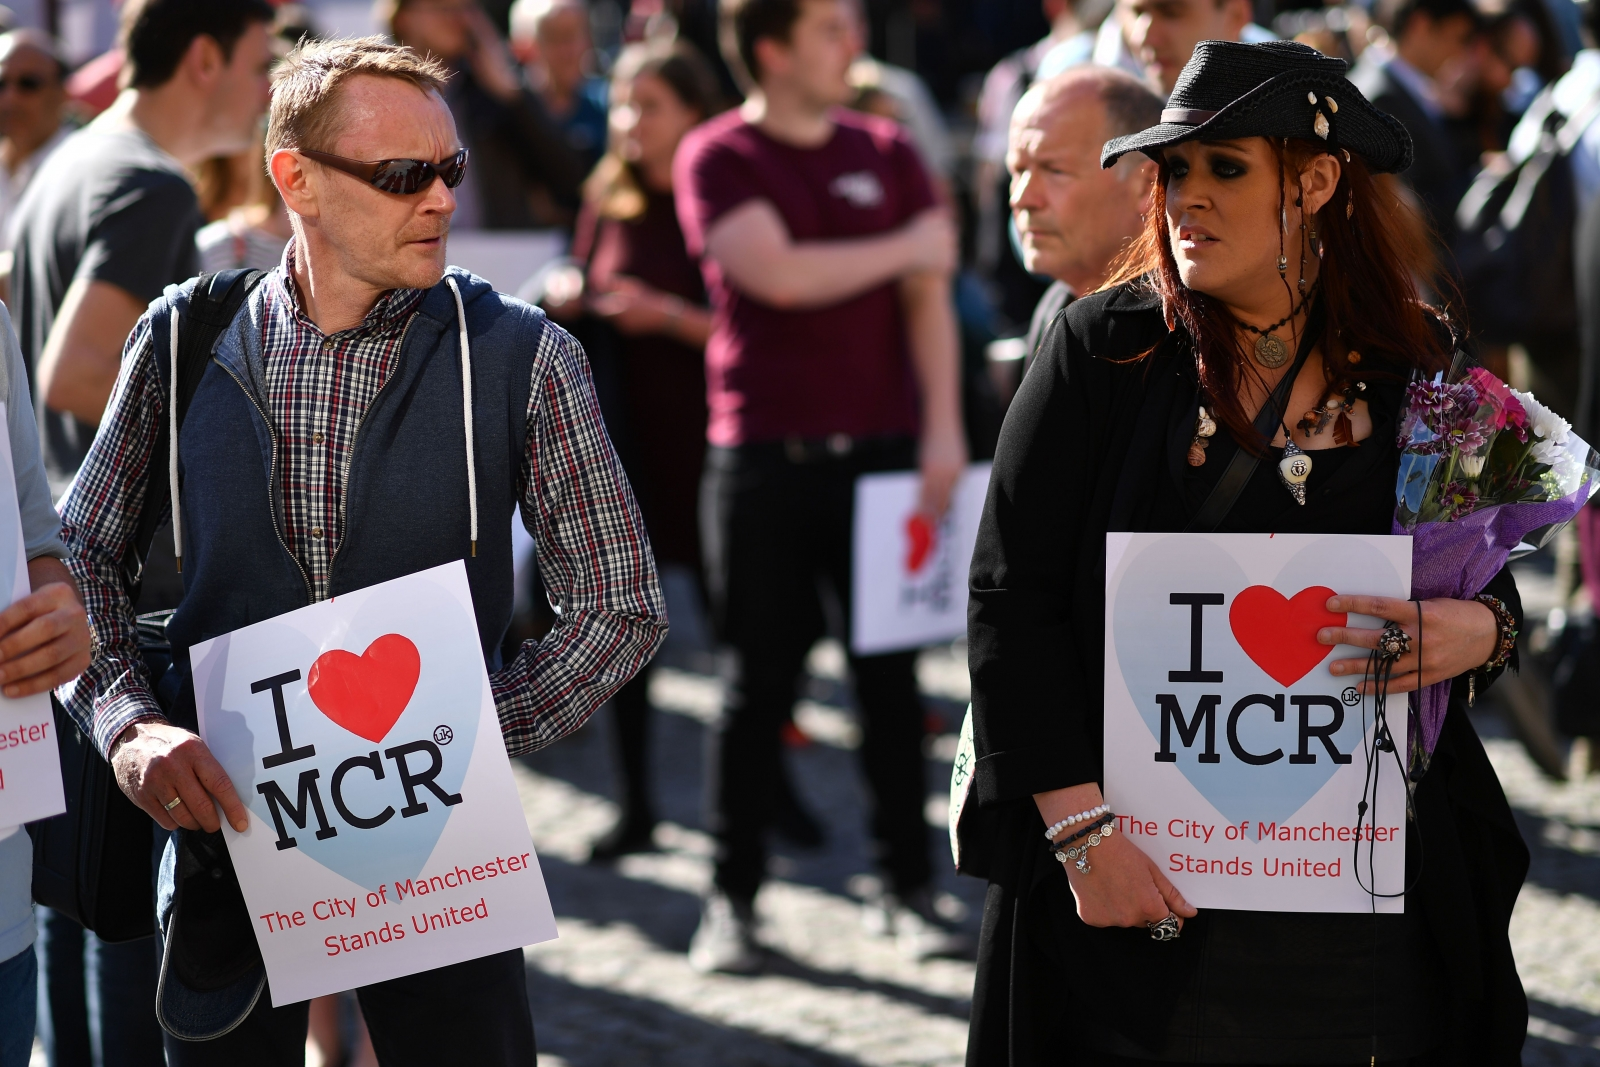 Manchester bombing: Salman Abedi had planned attack since December, says Libya